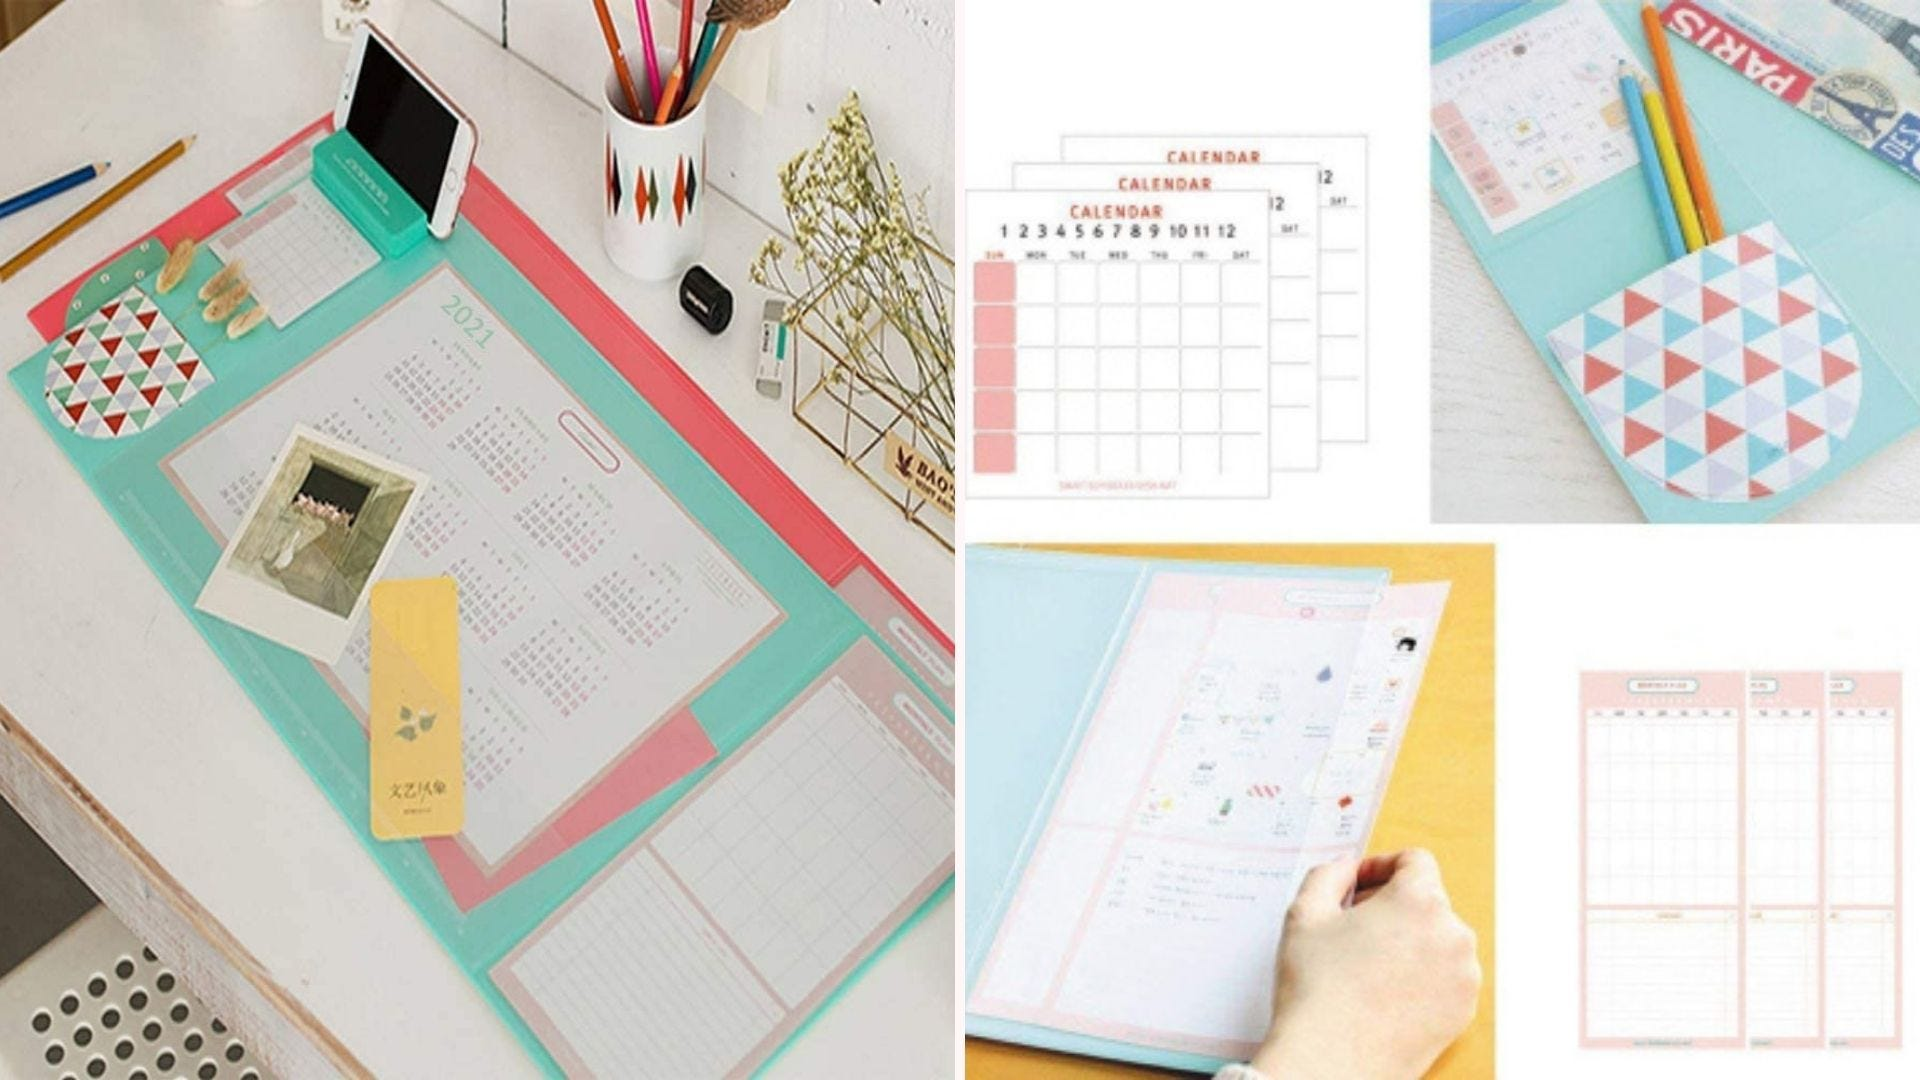 On the left, a top view of a light blue desk pad that features a large year calendar underneath a PVS cover. On the right, four close up images of the pad's accessory features, like its 12 small calendars and 12 monthly plan cards.